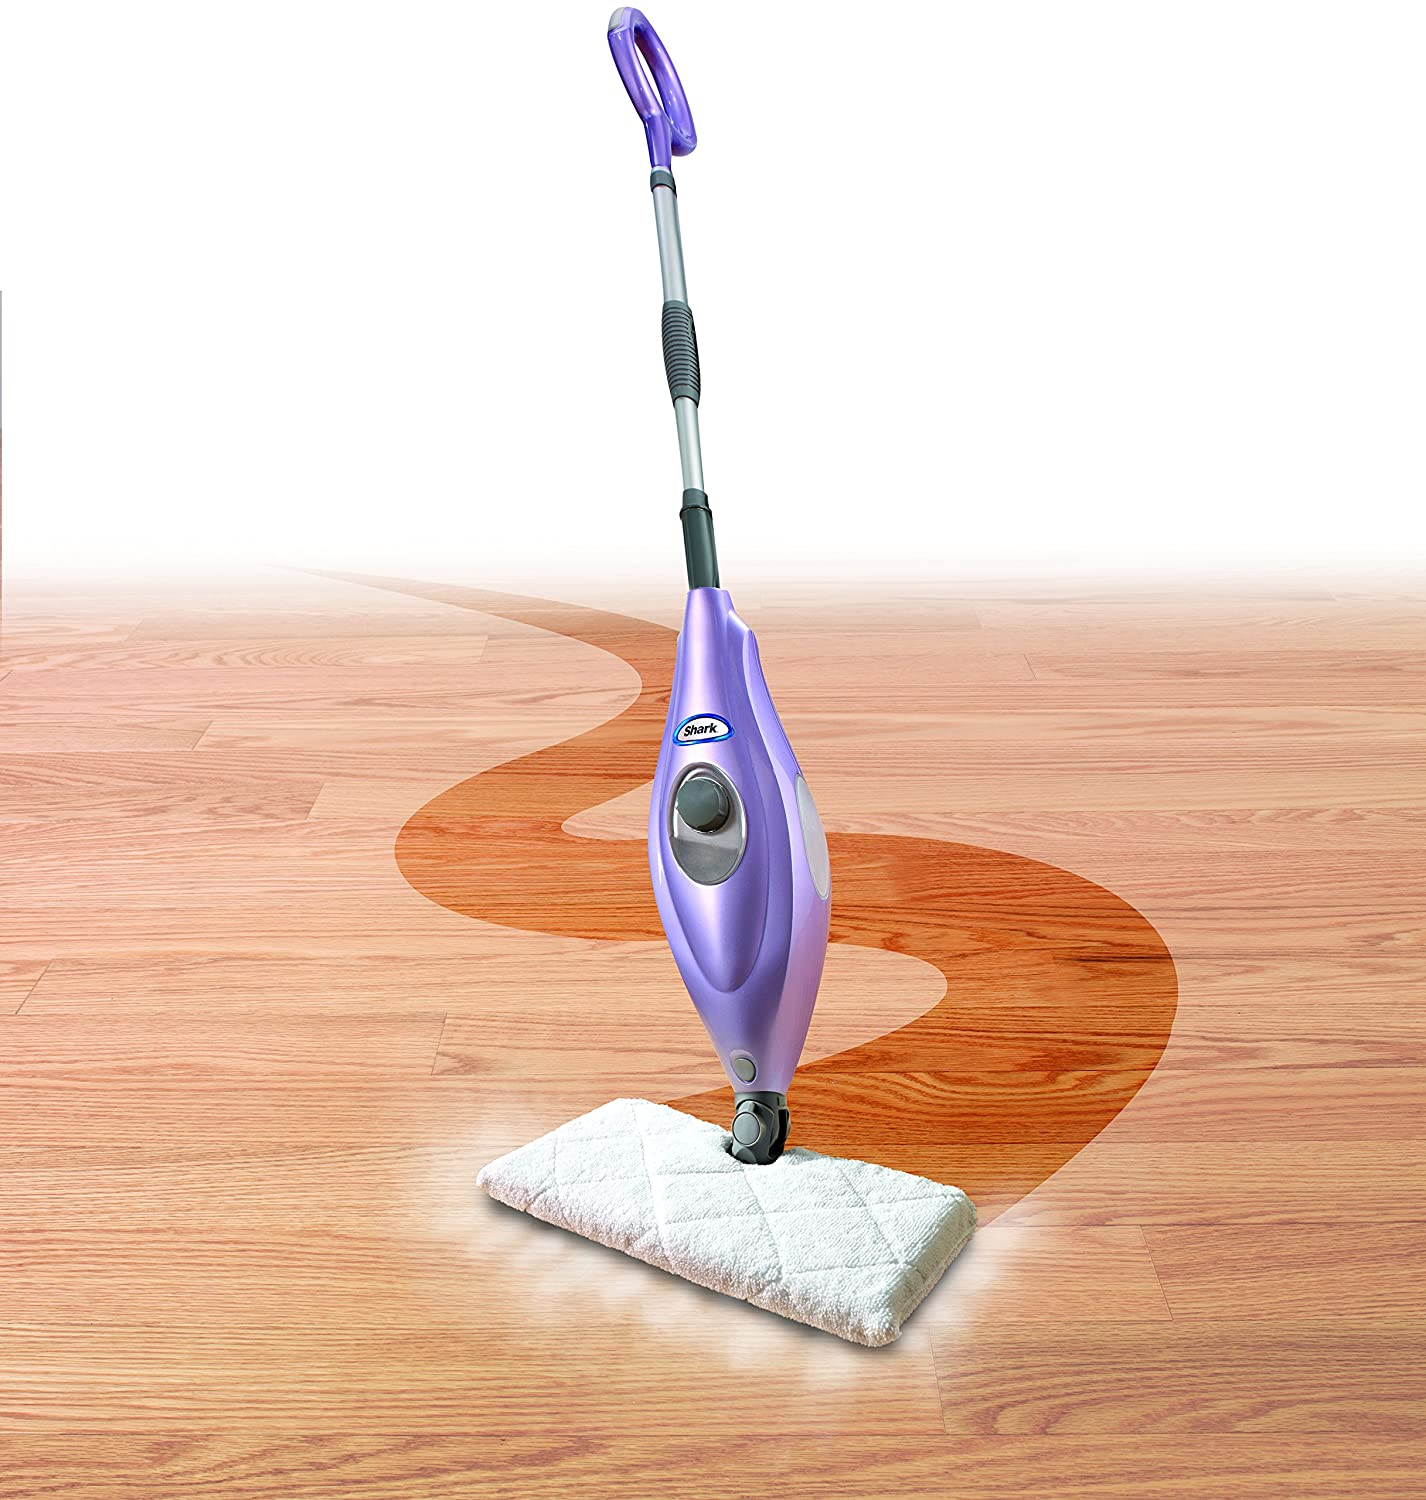 For Those With A Smaller Budget The Shark Steam Pocket Mop (S3501) Is  Cheaper Model. This Steam Mop Has Actually Gotten Better Reviews For Its  Cleaning ...